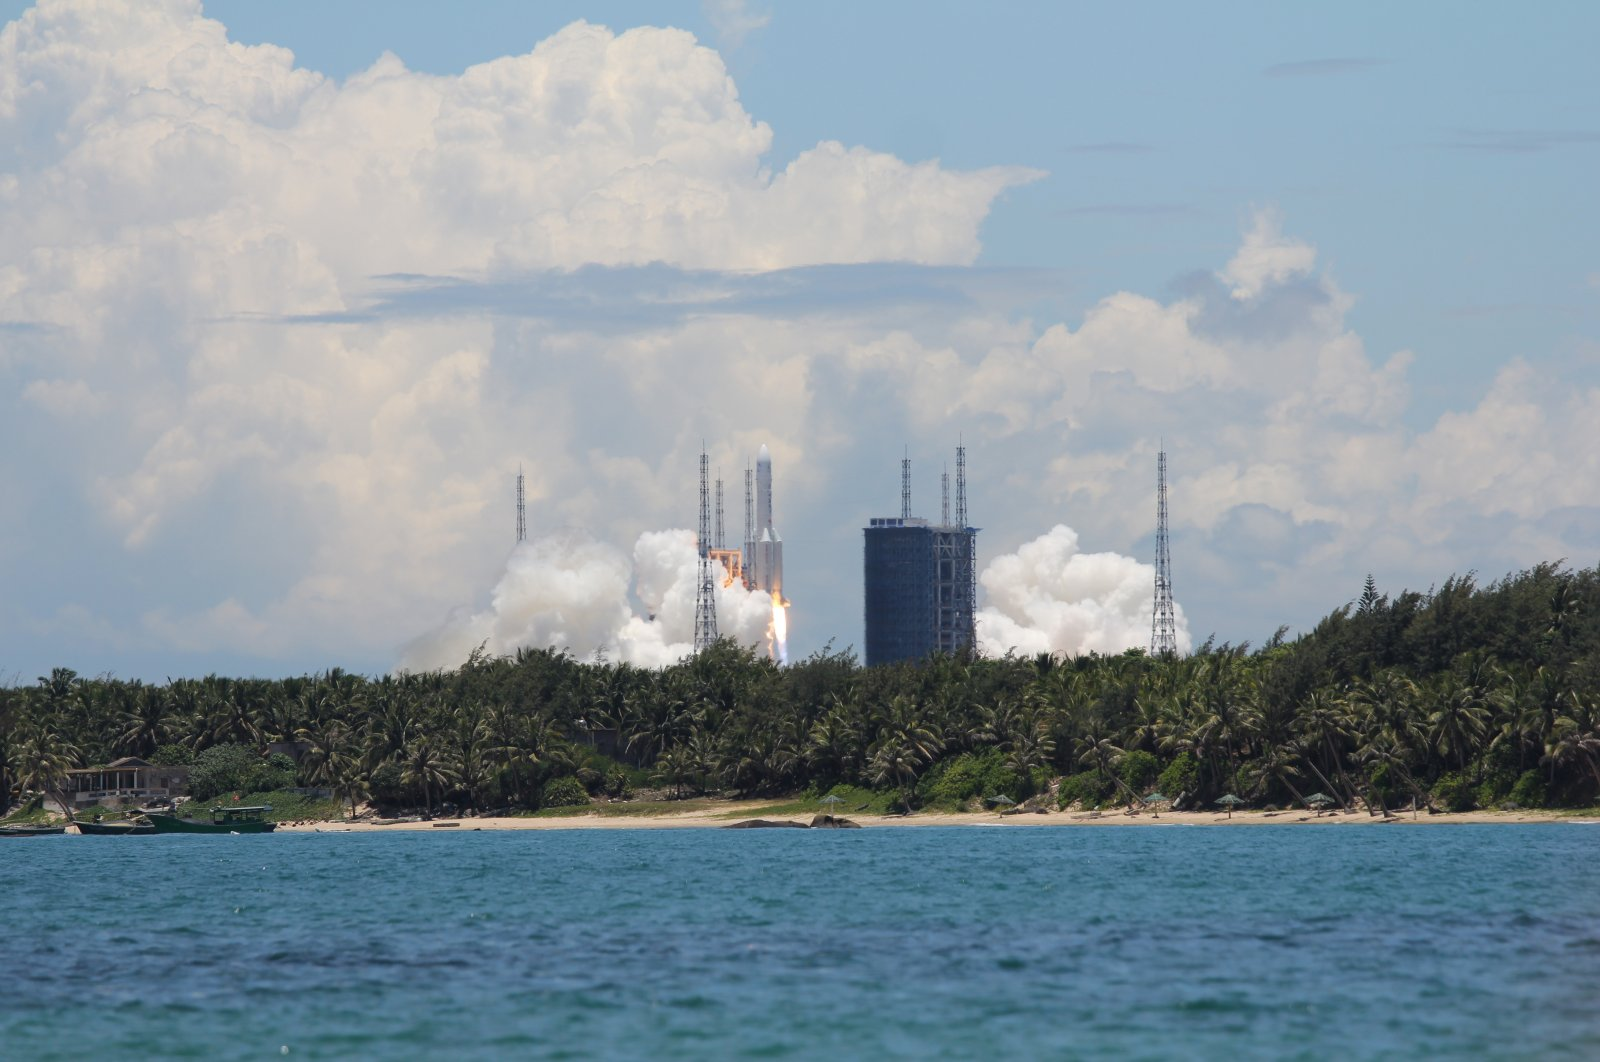 China's Tianwen-1 launches from the Wenchang spaceport for the Mars mission, Hainan, China, July, 23, 2020. (Shutterstock Photo)